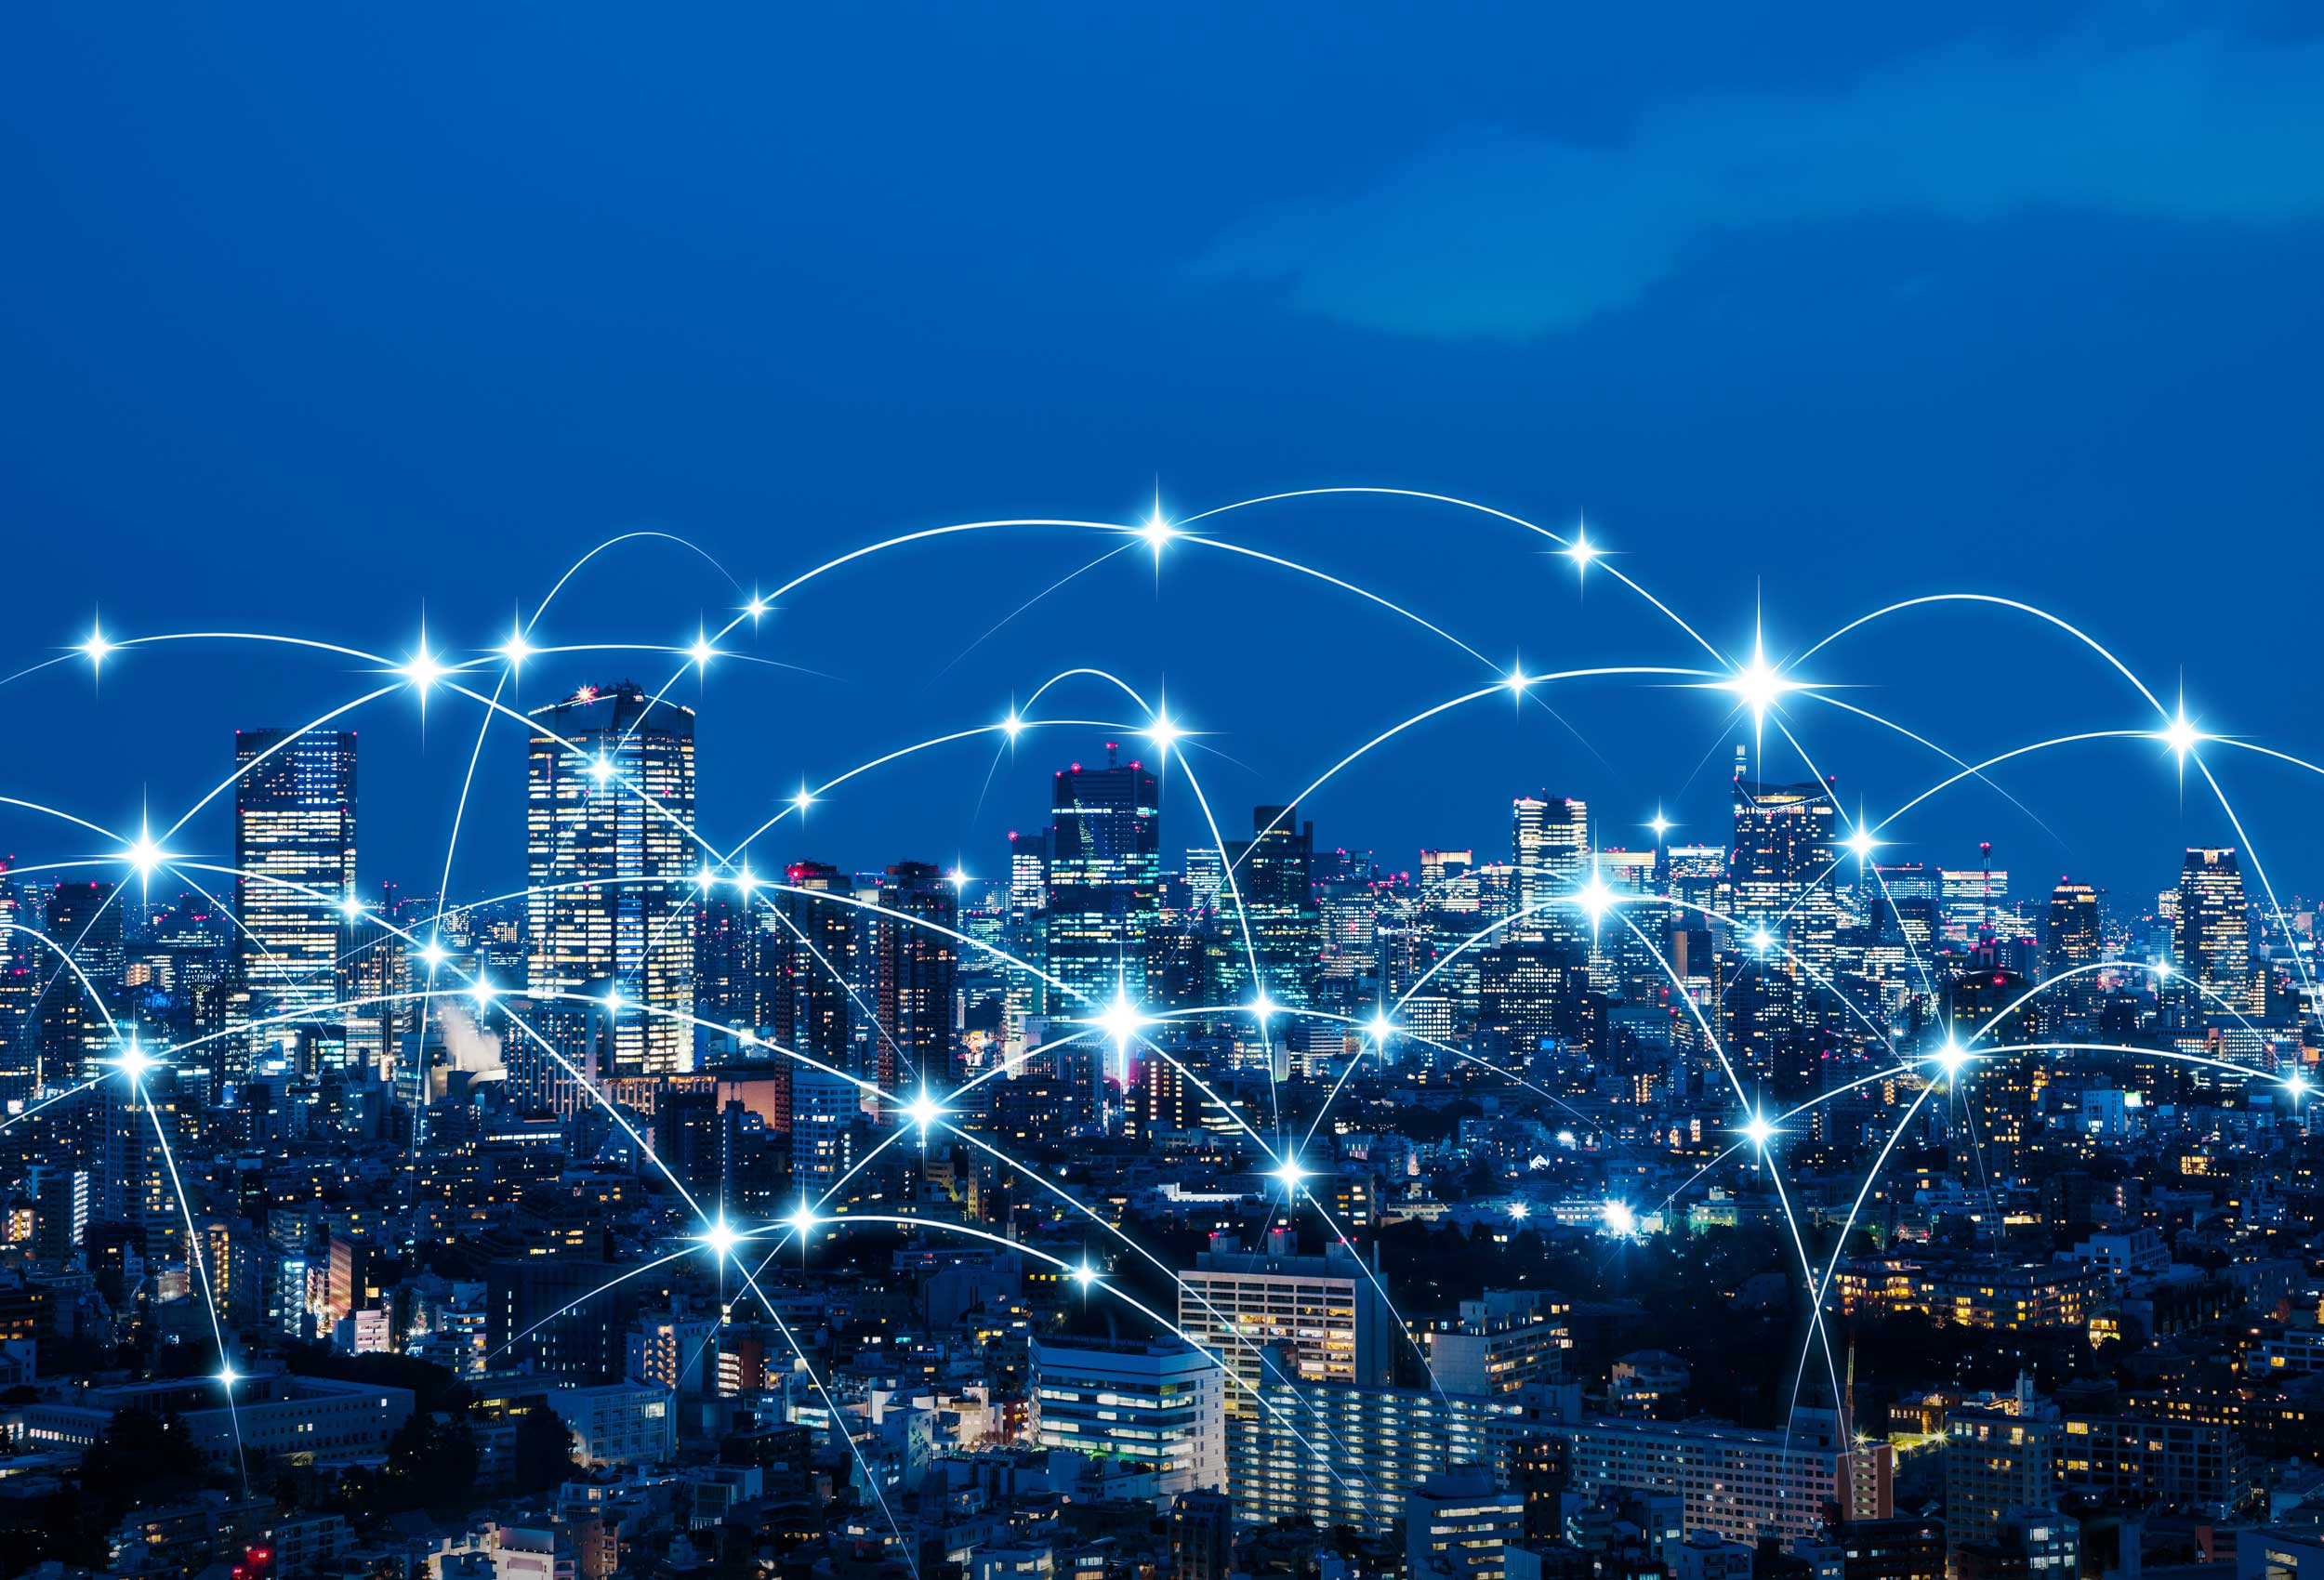 Sparkgroup Telecoms spin-out establishes technology direction